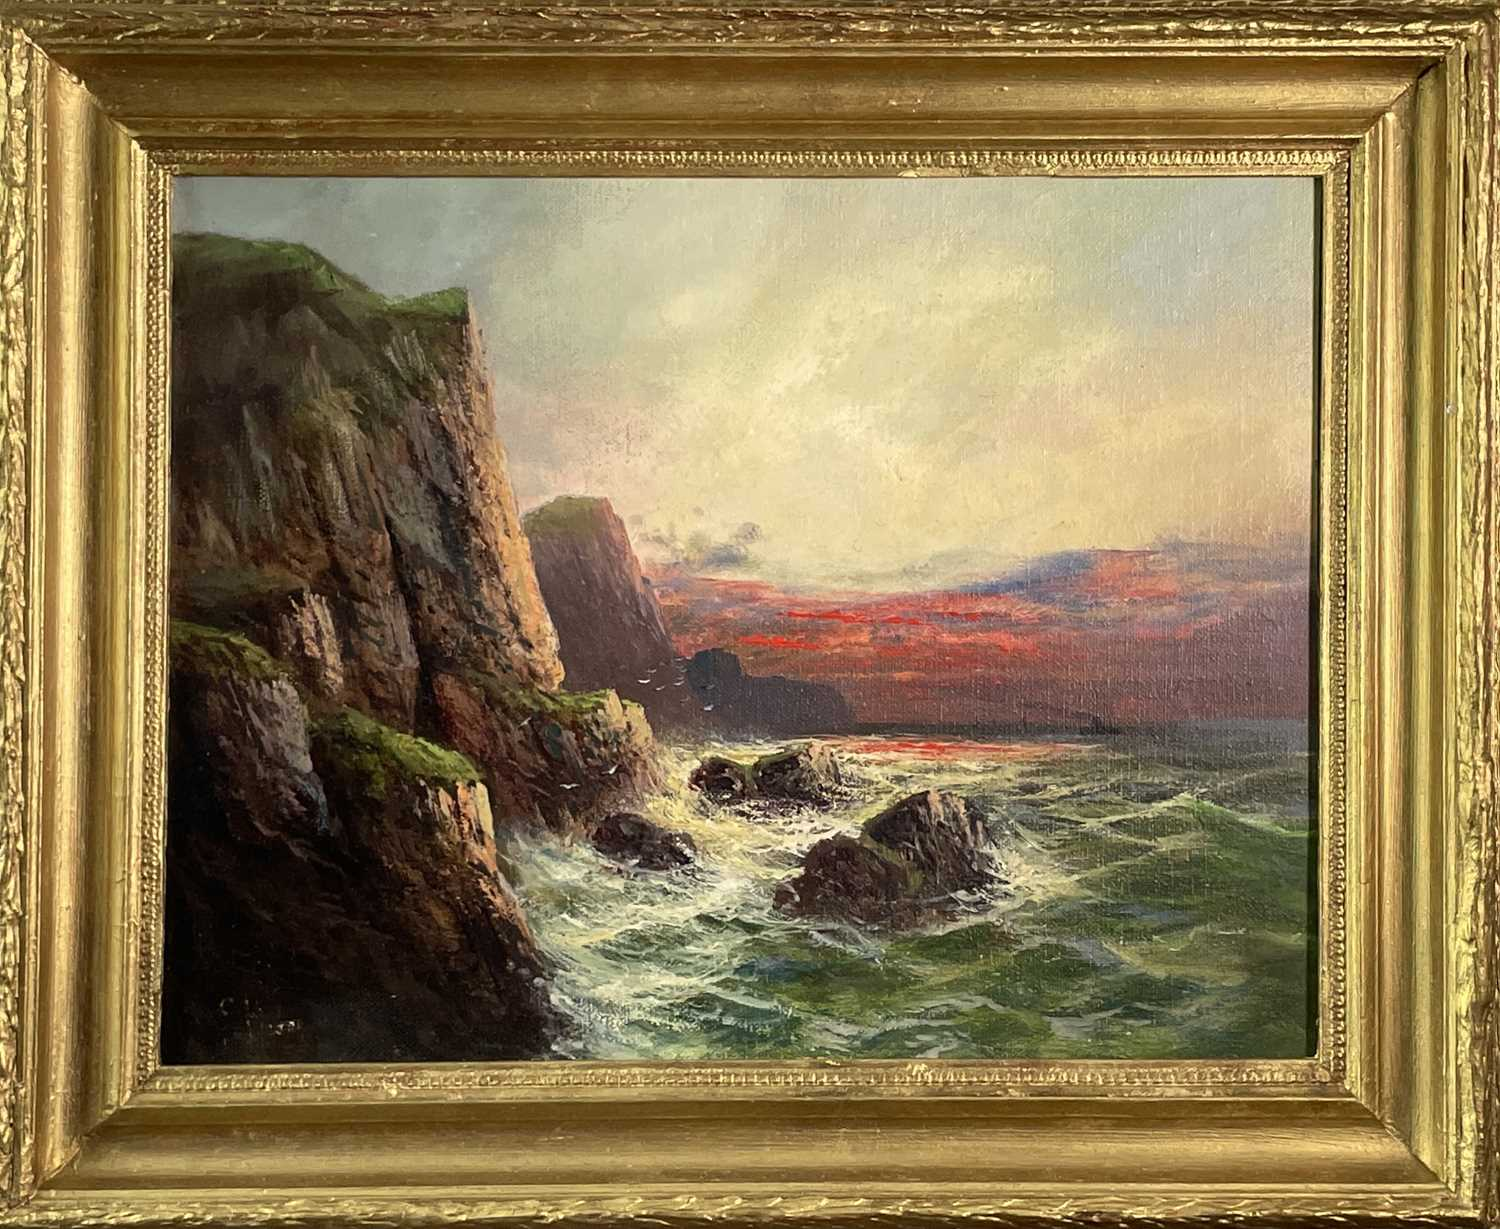 """Frank HIDER (1861-1933)Two oils on canvas """"Near Lands End"""", 30 x 50cm'The Evening Glory of the - Image 3 of 7"""